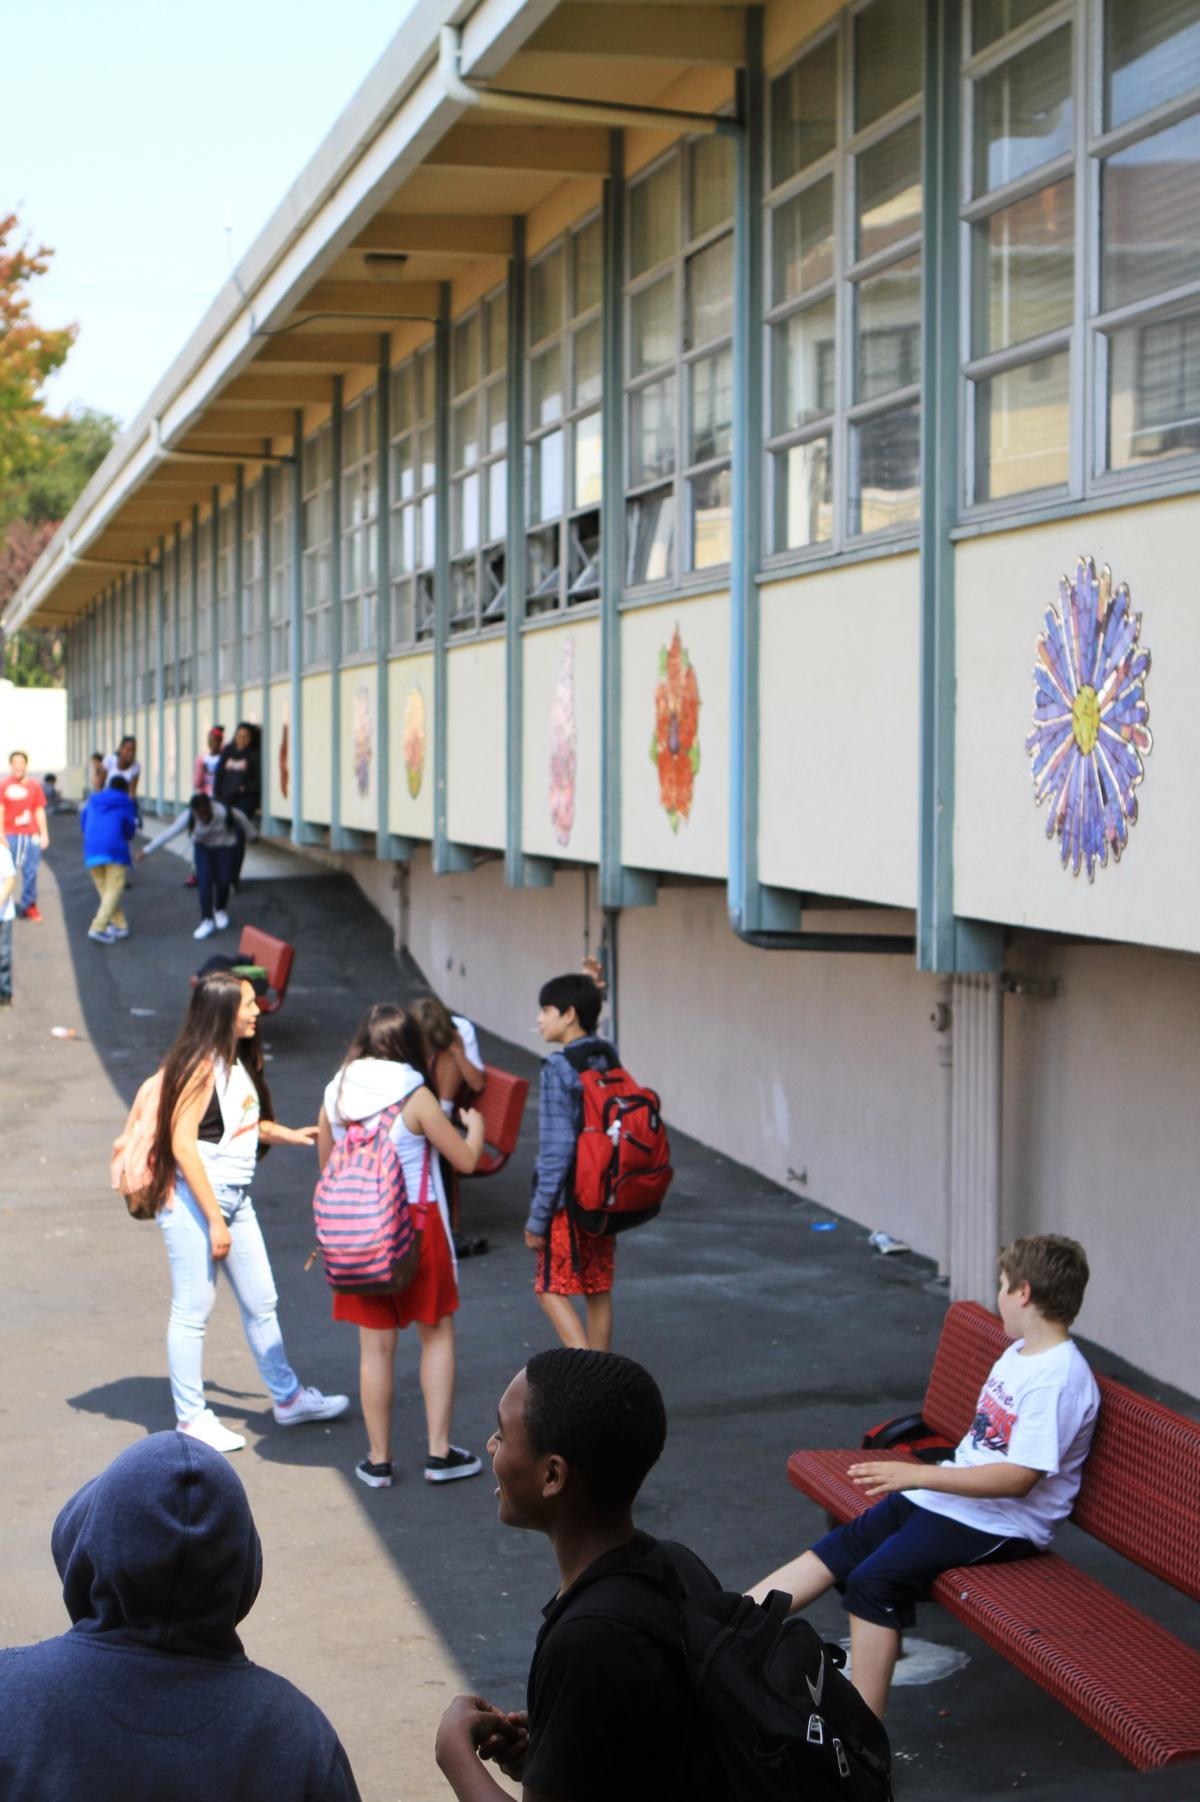 Students congregate outside at Edna Brewer Middle School. The hope of restorative justice is that dialogue builds trust and community and reduces the need for suspensions and expulsions.